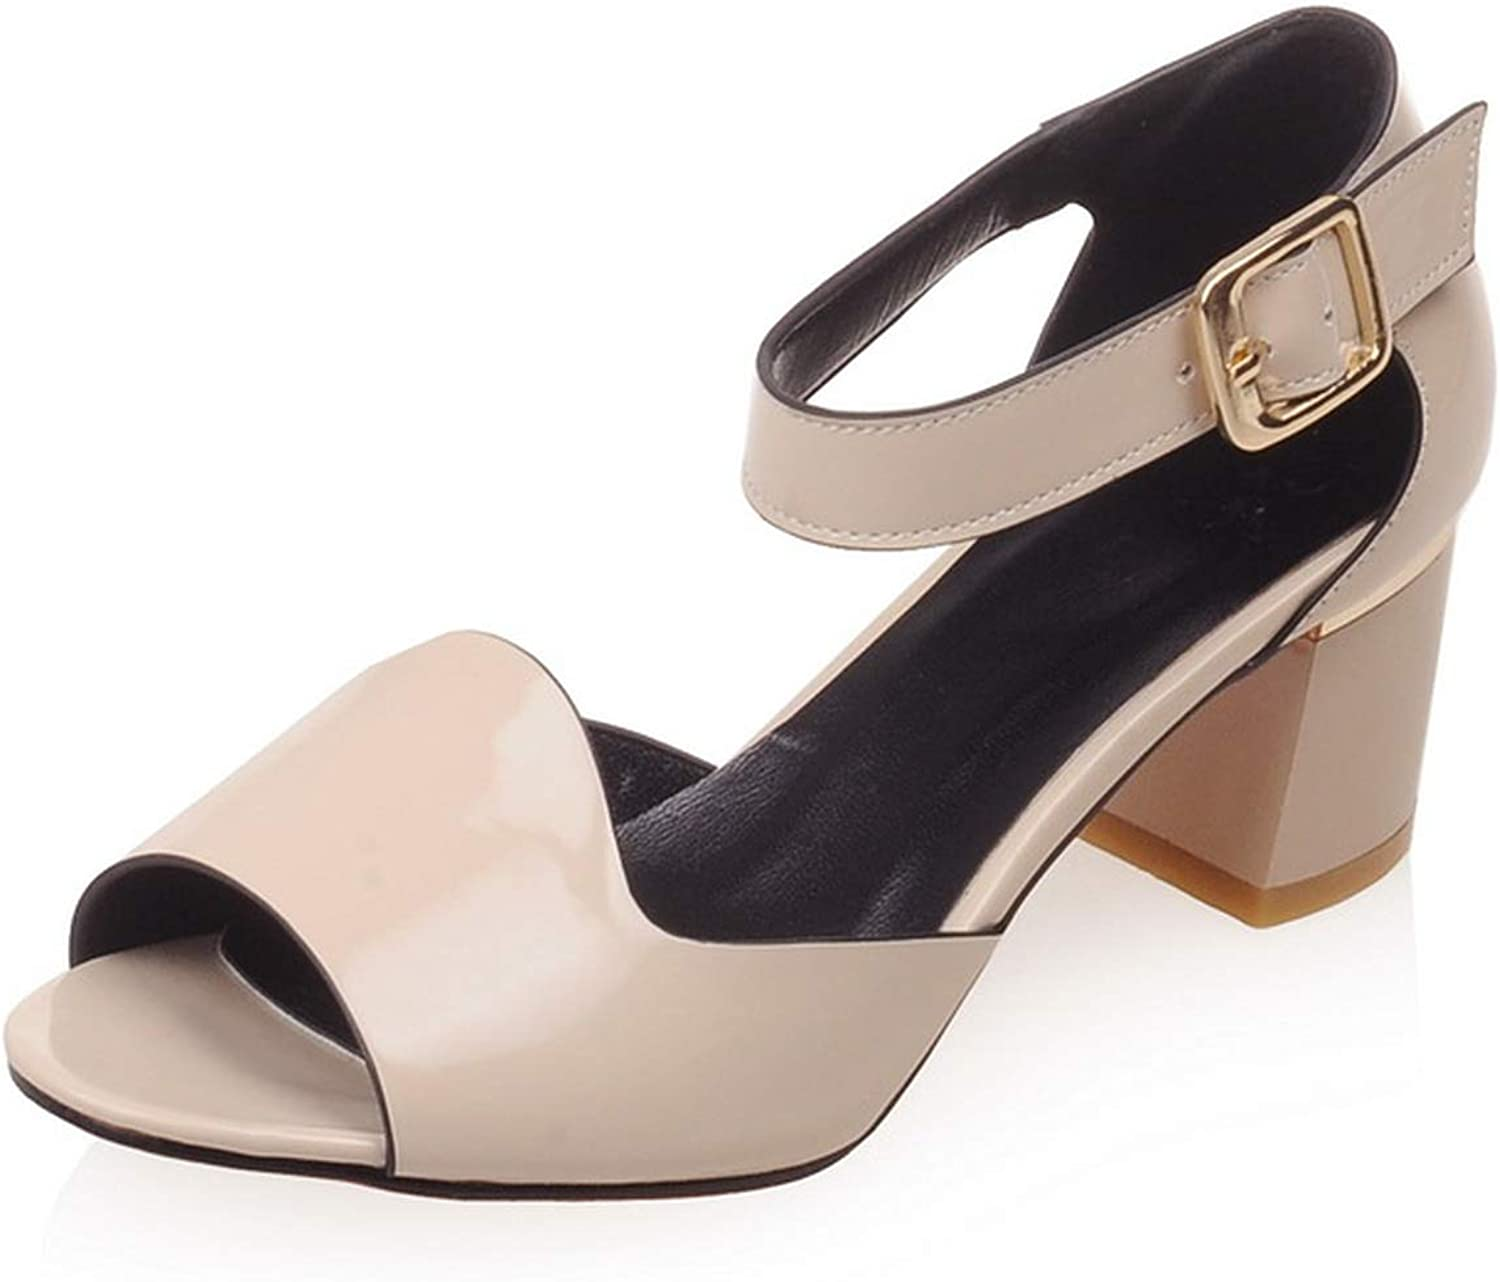 Pink-star Sexy Thick Square Heels Open Toe Summer Sandals shoes for Female Girl's Summer Wear